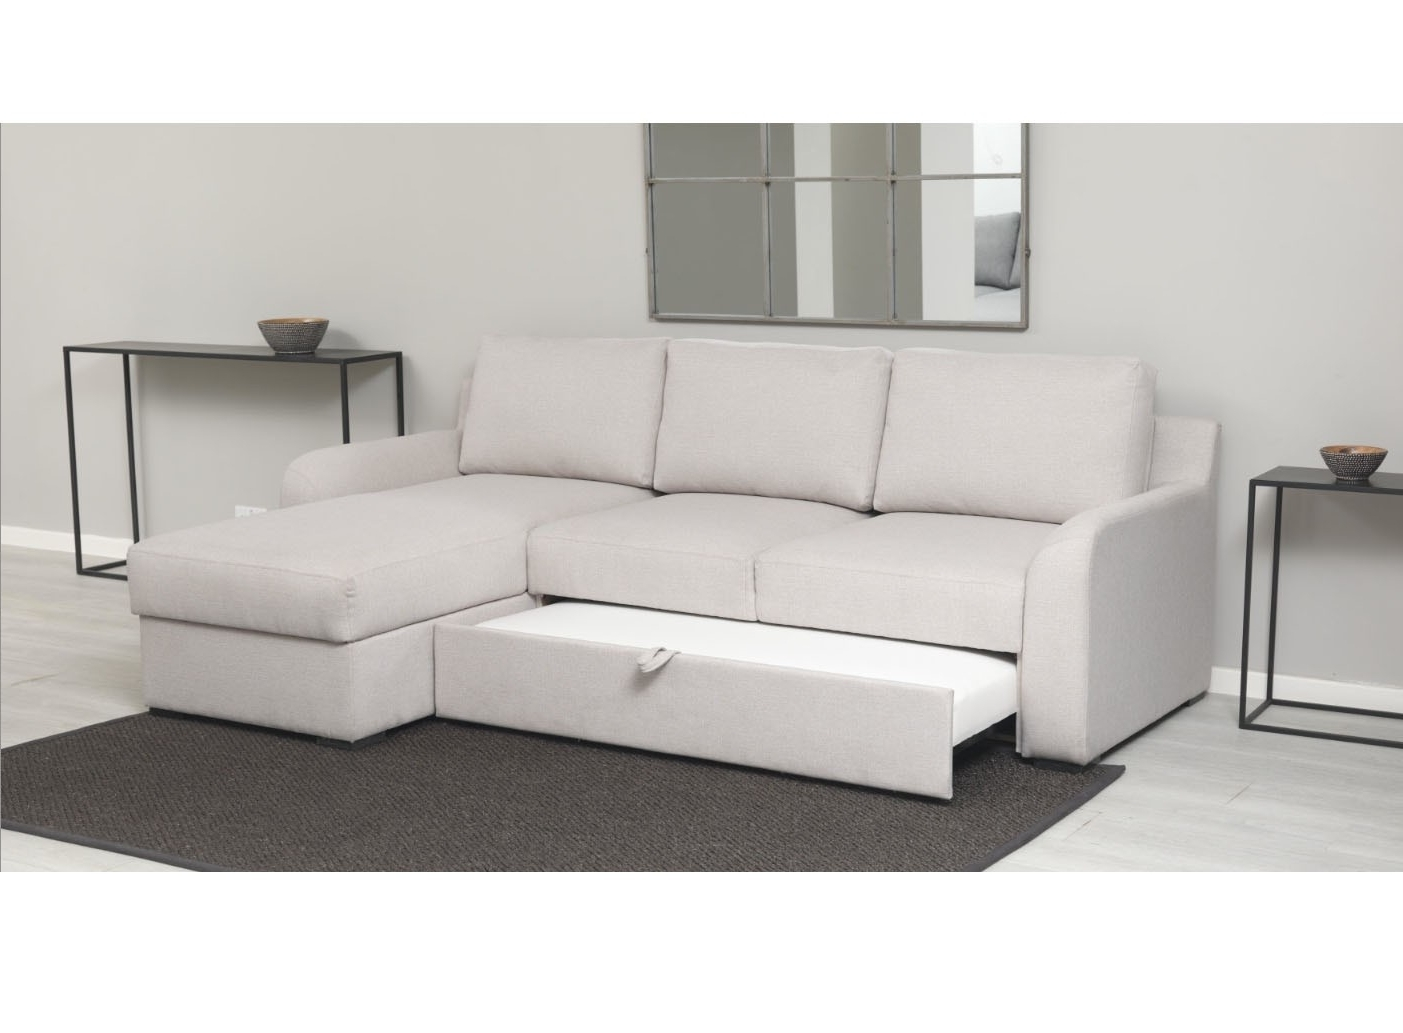 Latest Sofa Beds With Chaise With Regard To Corner Sofa Bed With Storage – Mforum (View 8 of 15)